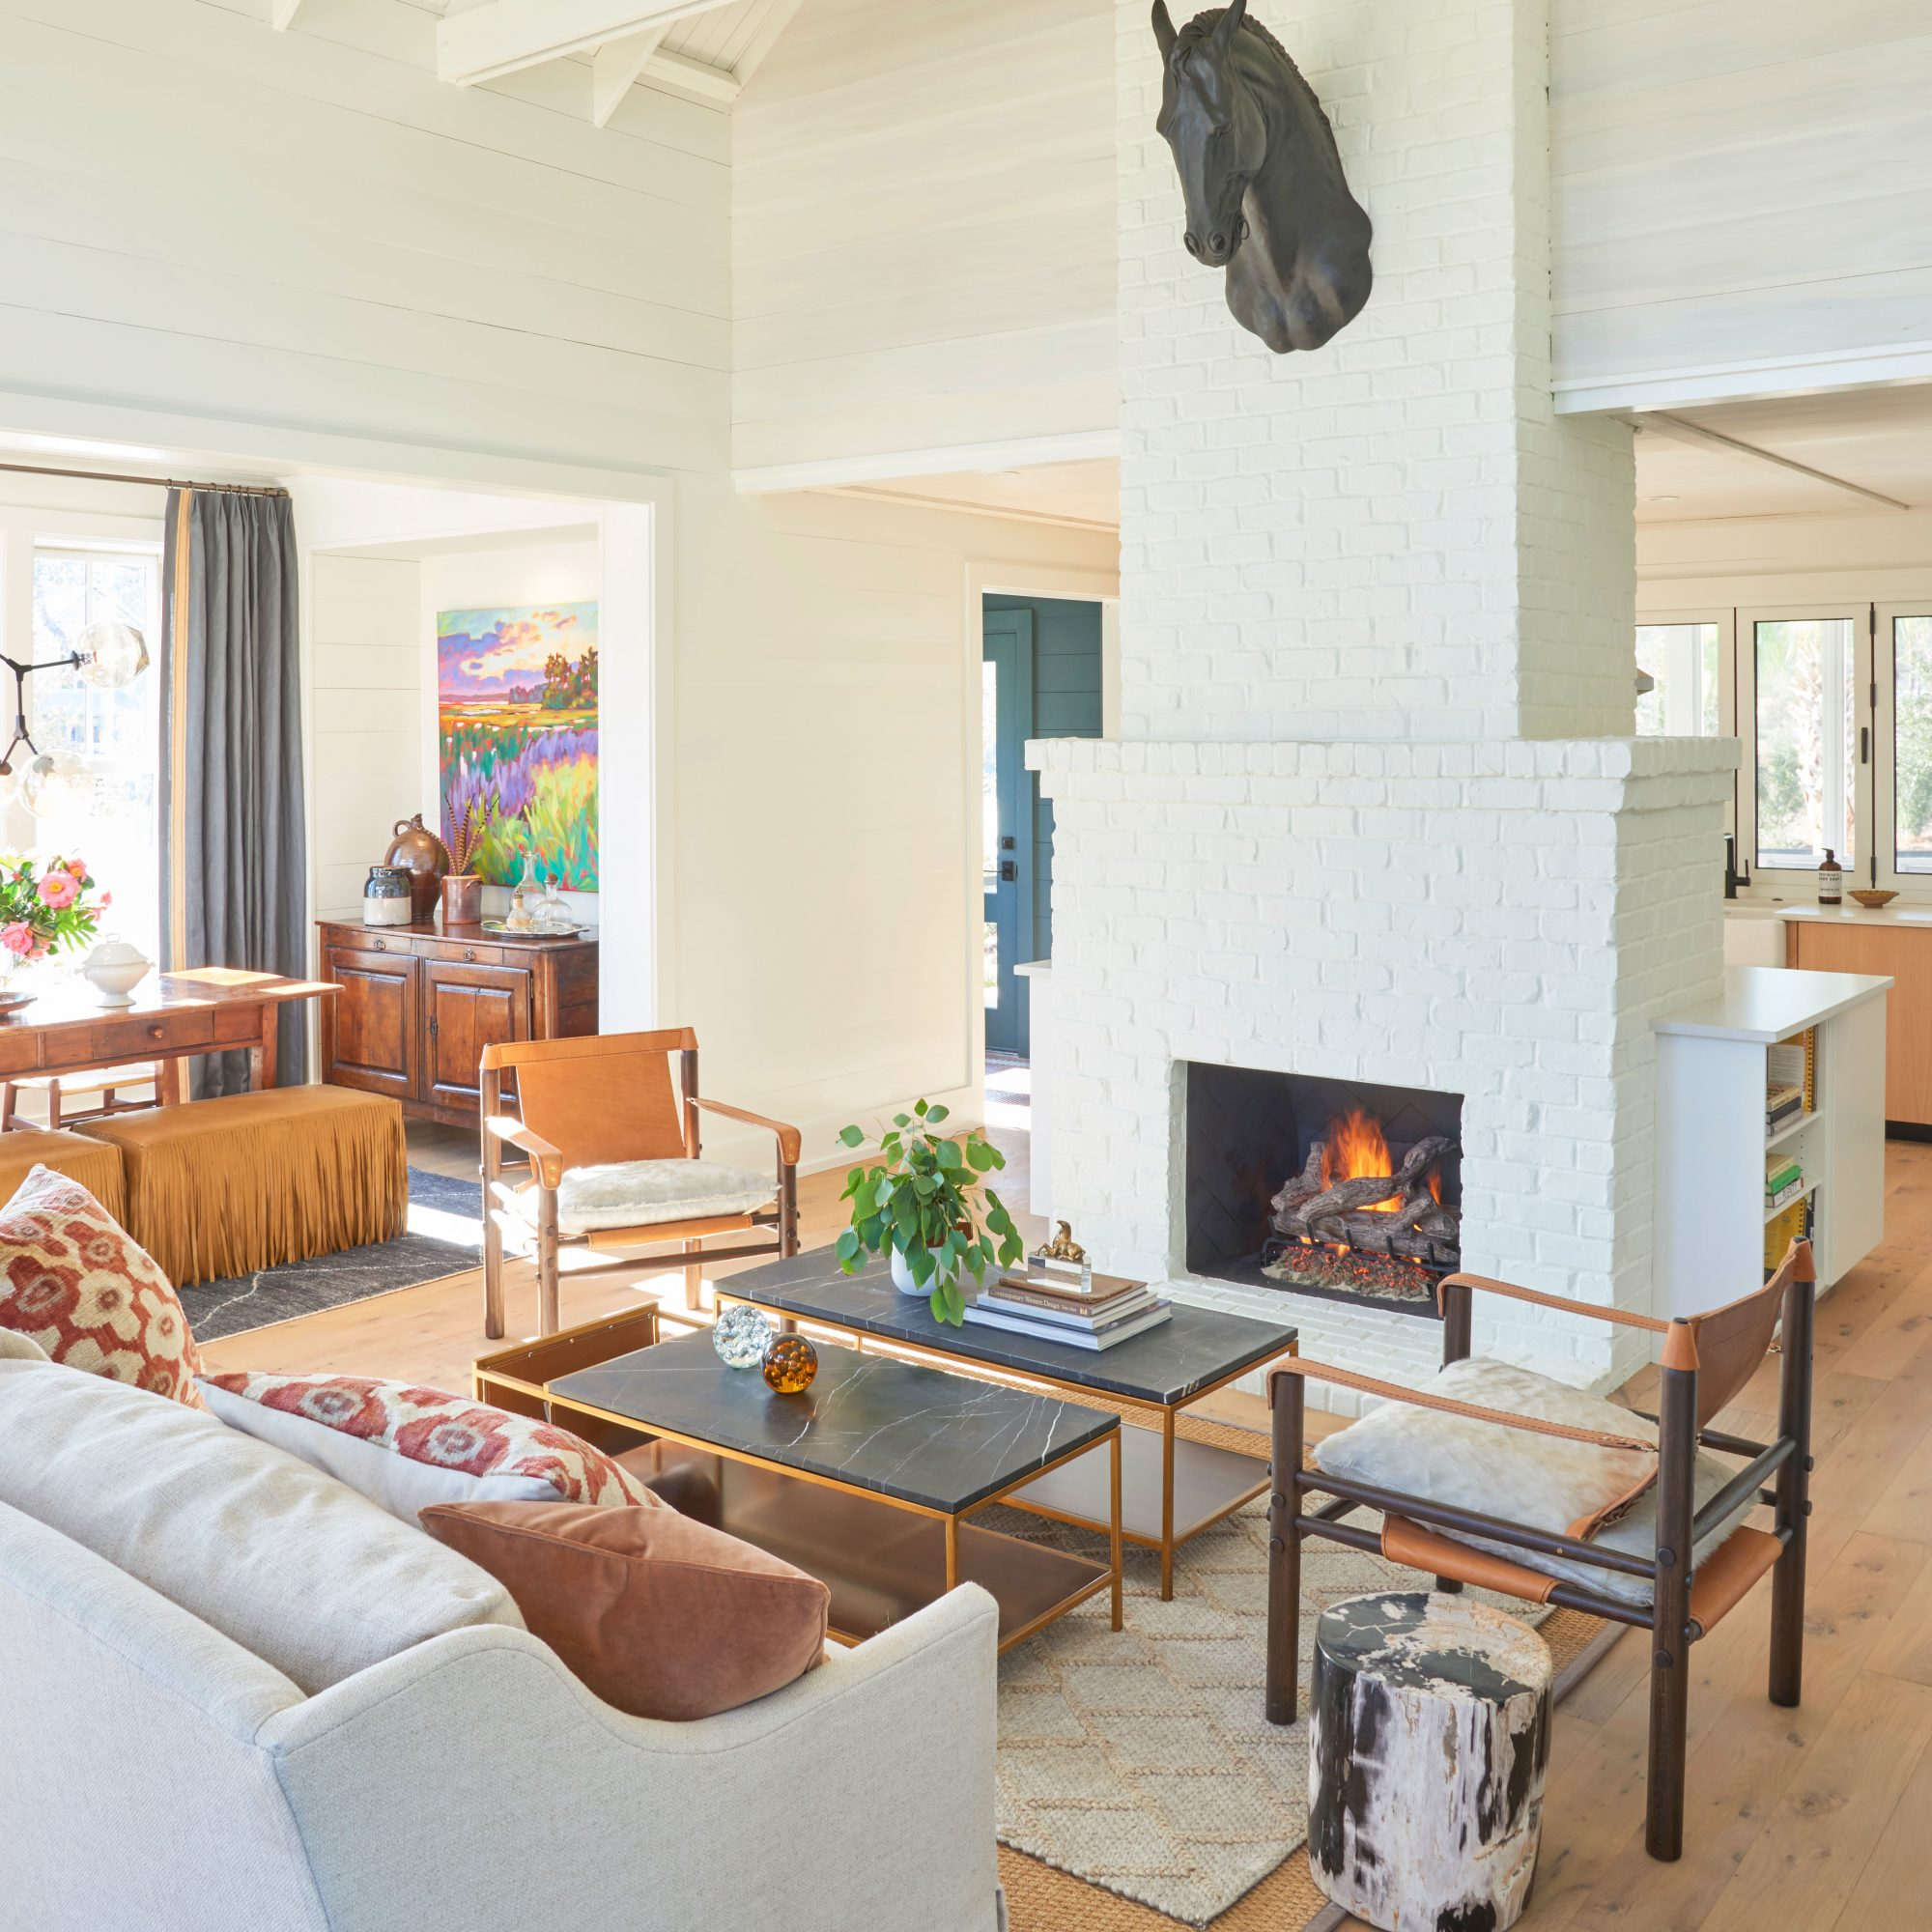 A lofty open-concept living room in a contemporary Lowcountry home.